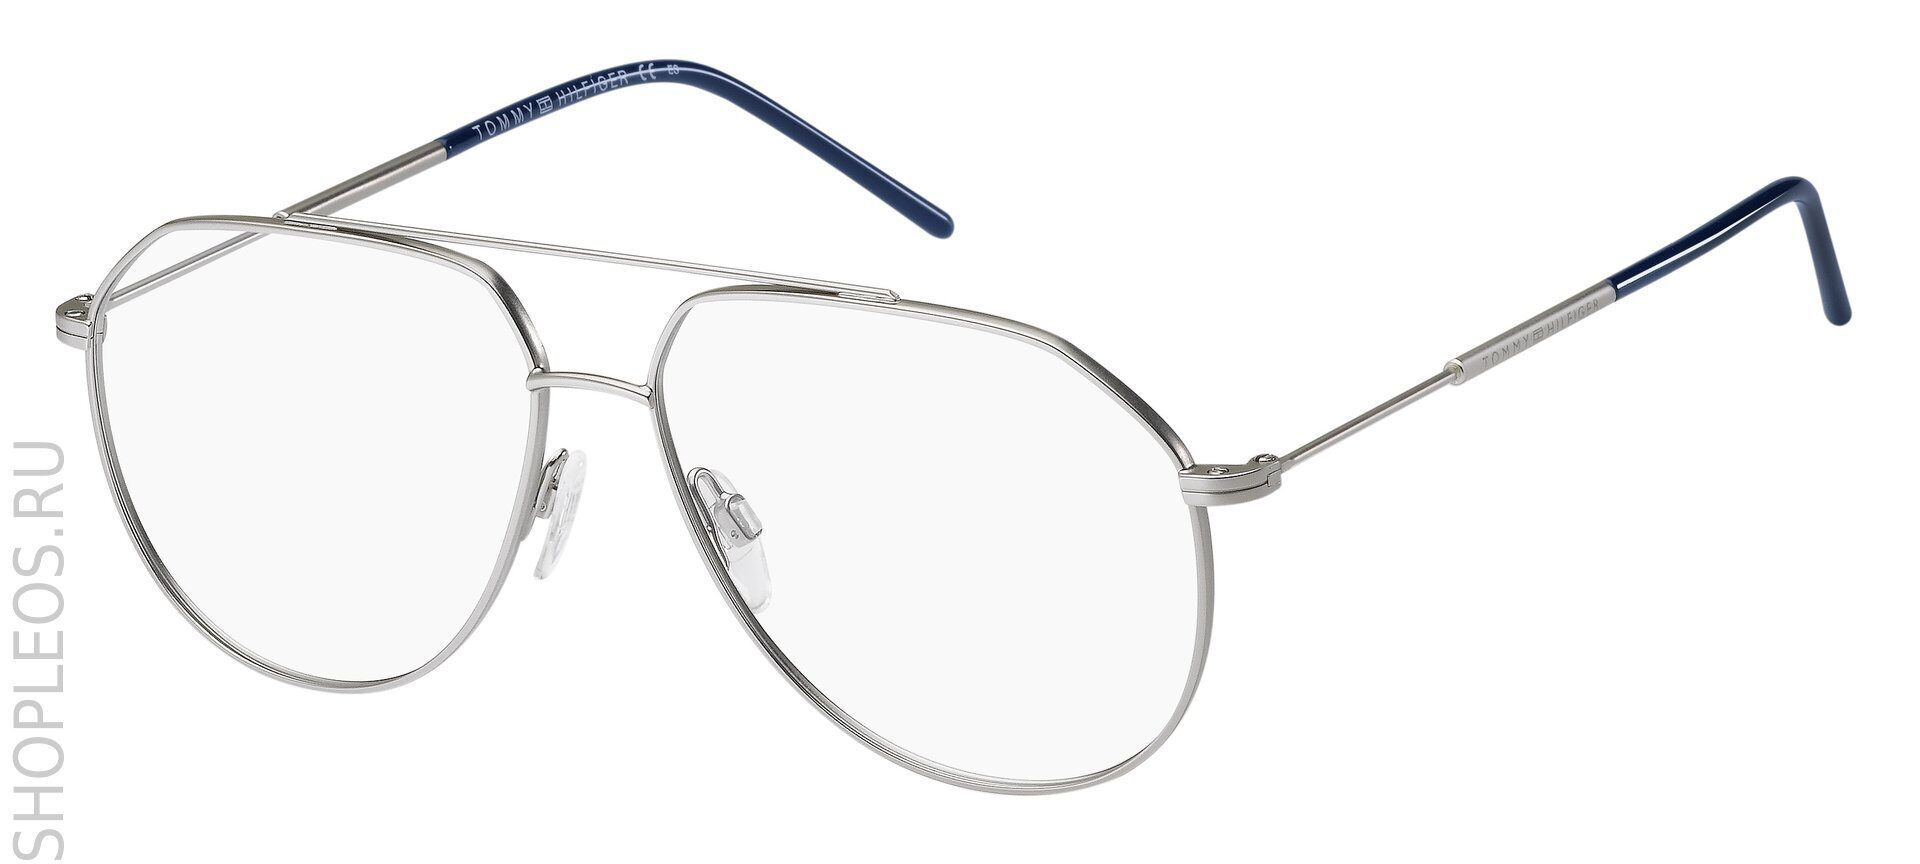 TOMMY HILFIGER UNISEX TH 1585 CTL